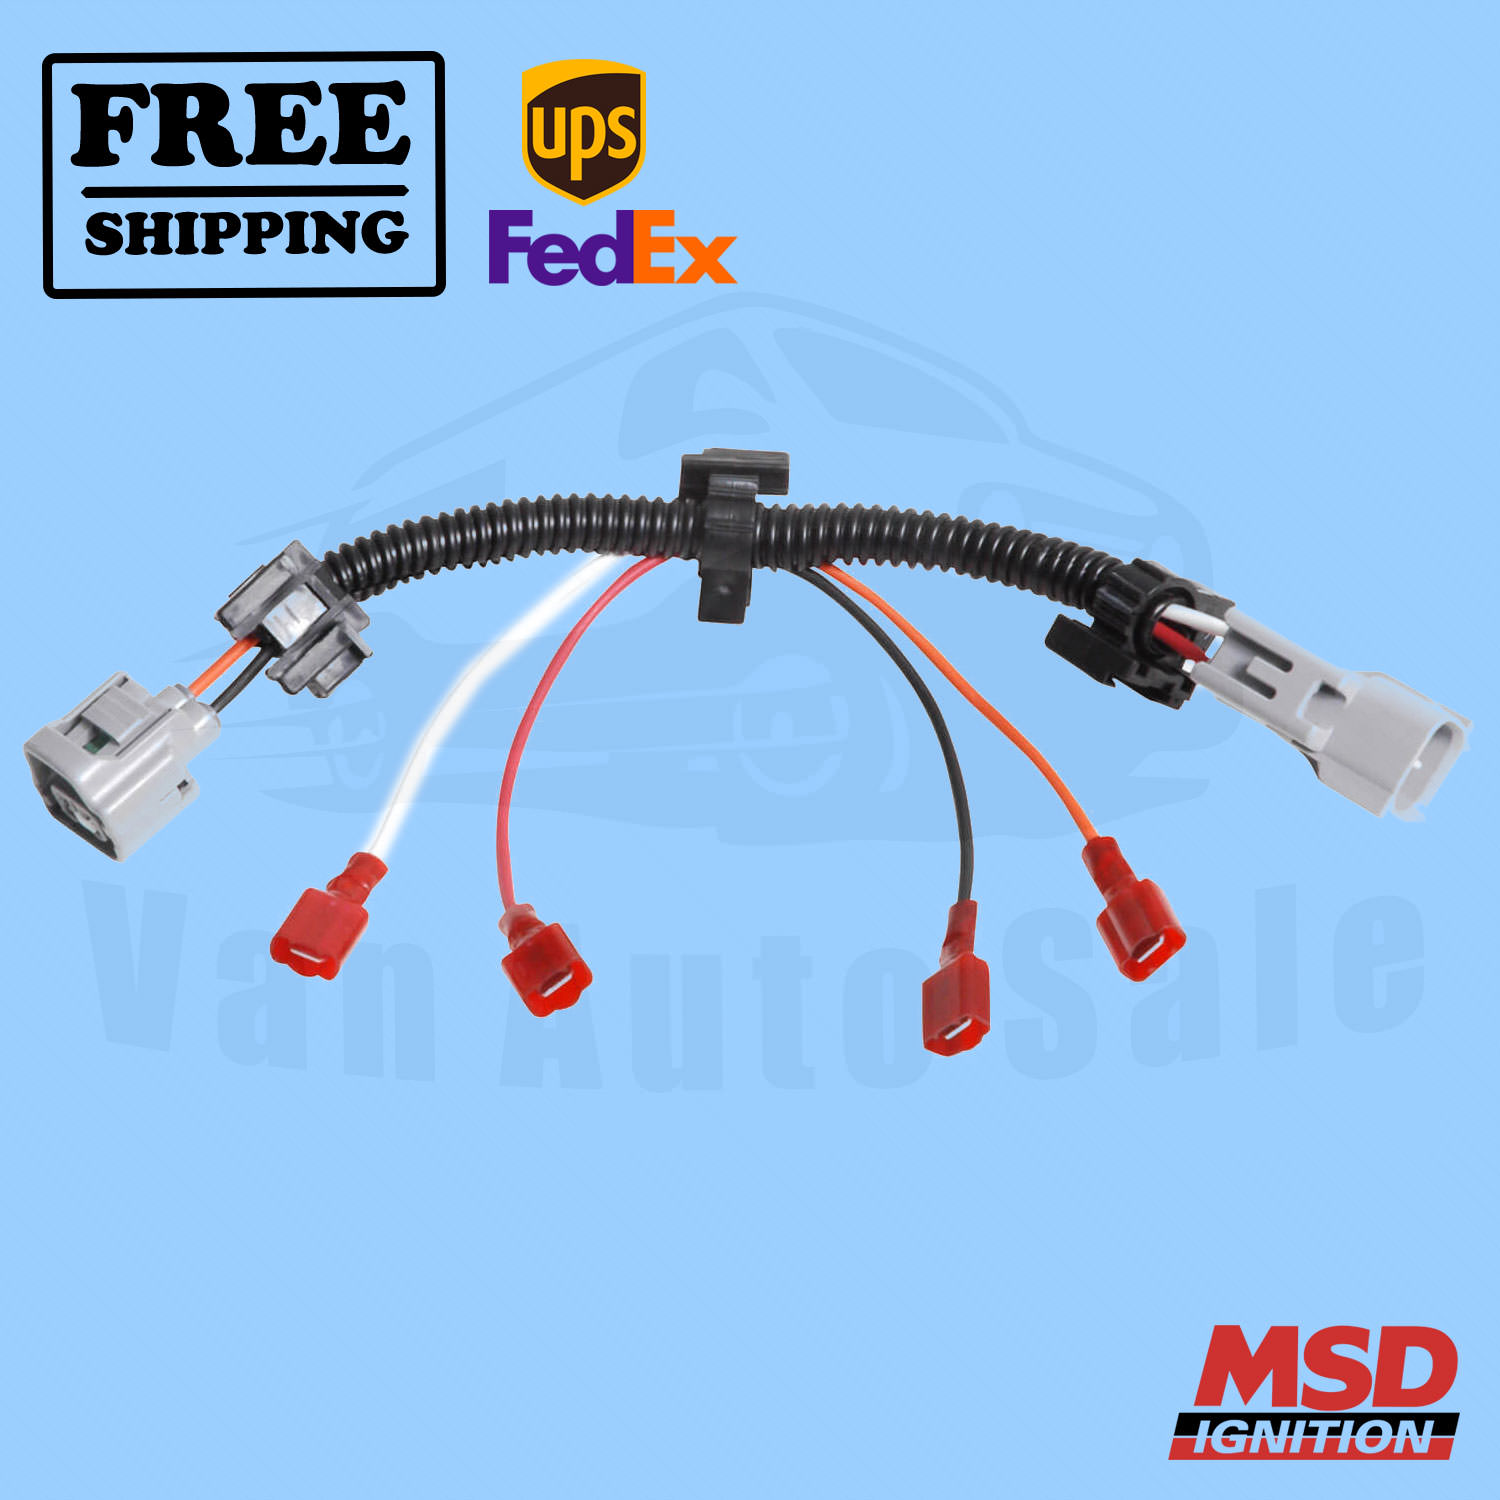 2001 dodge intrepid wiring harness | guide-anywhere wiring diagram options  - guide-anywhere.autoveicoli-elettrici.it  autoveicoli elettrici